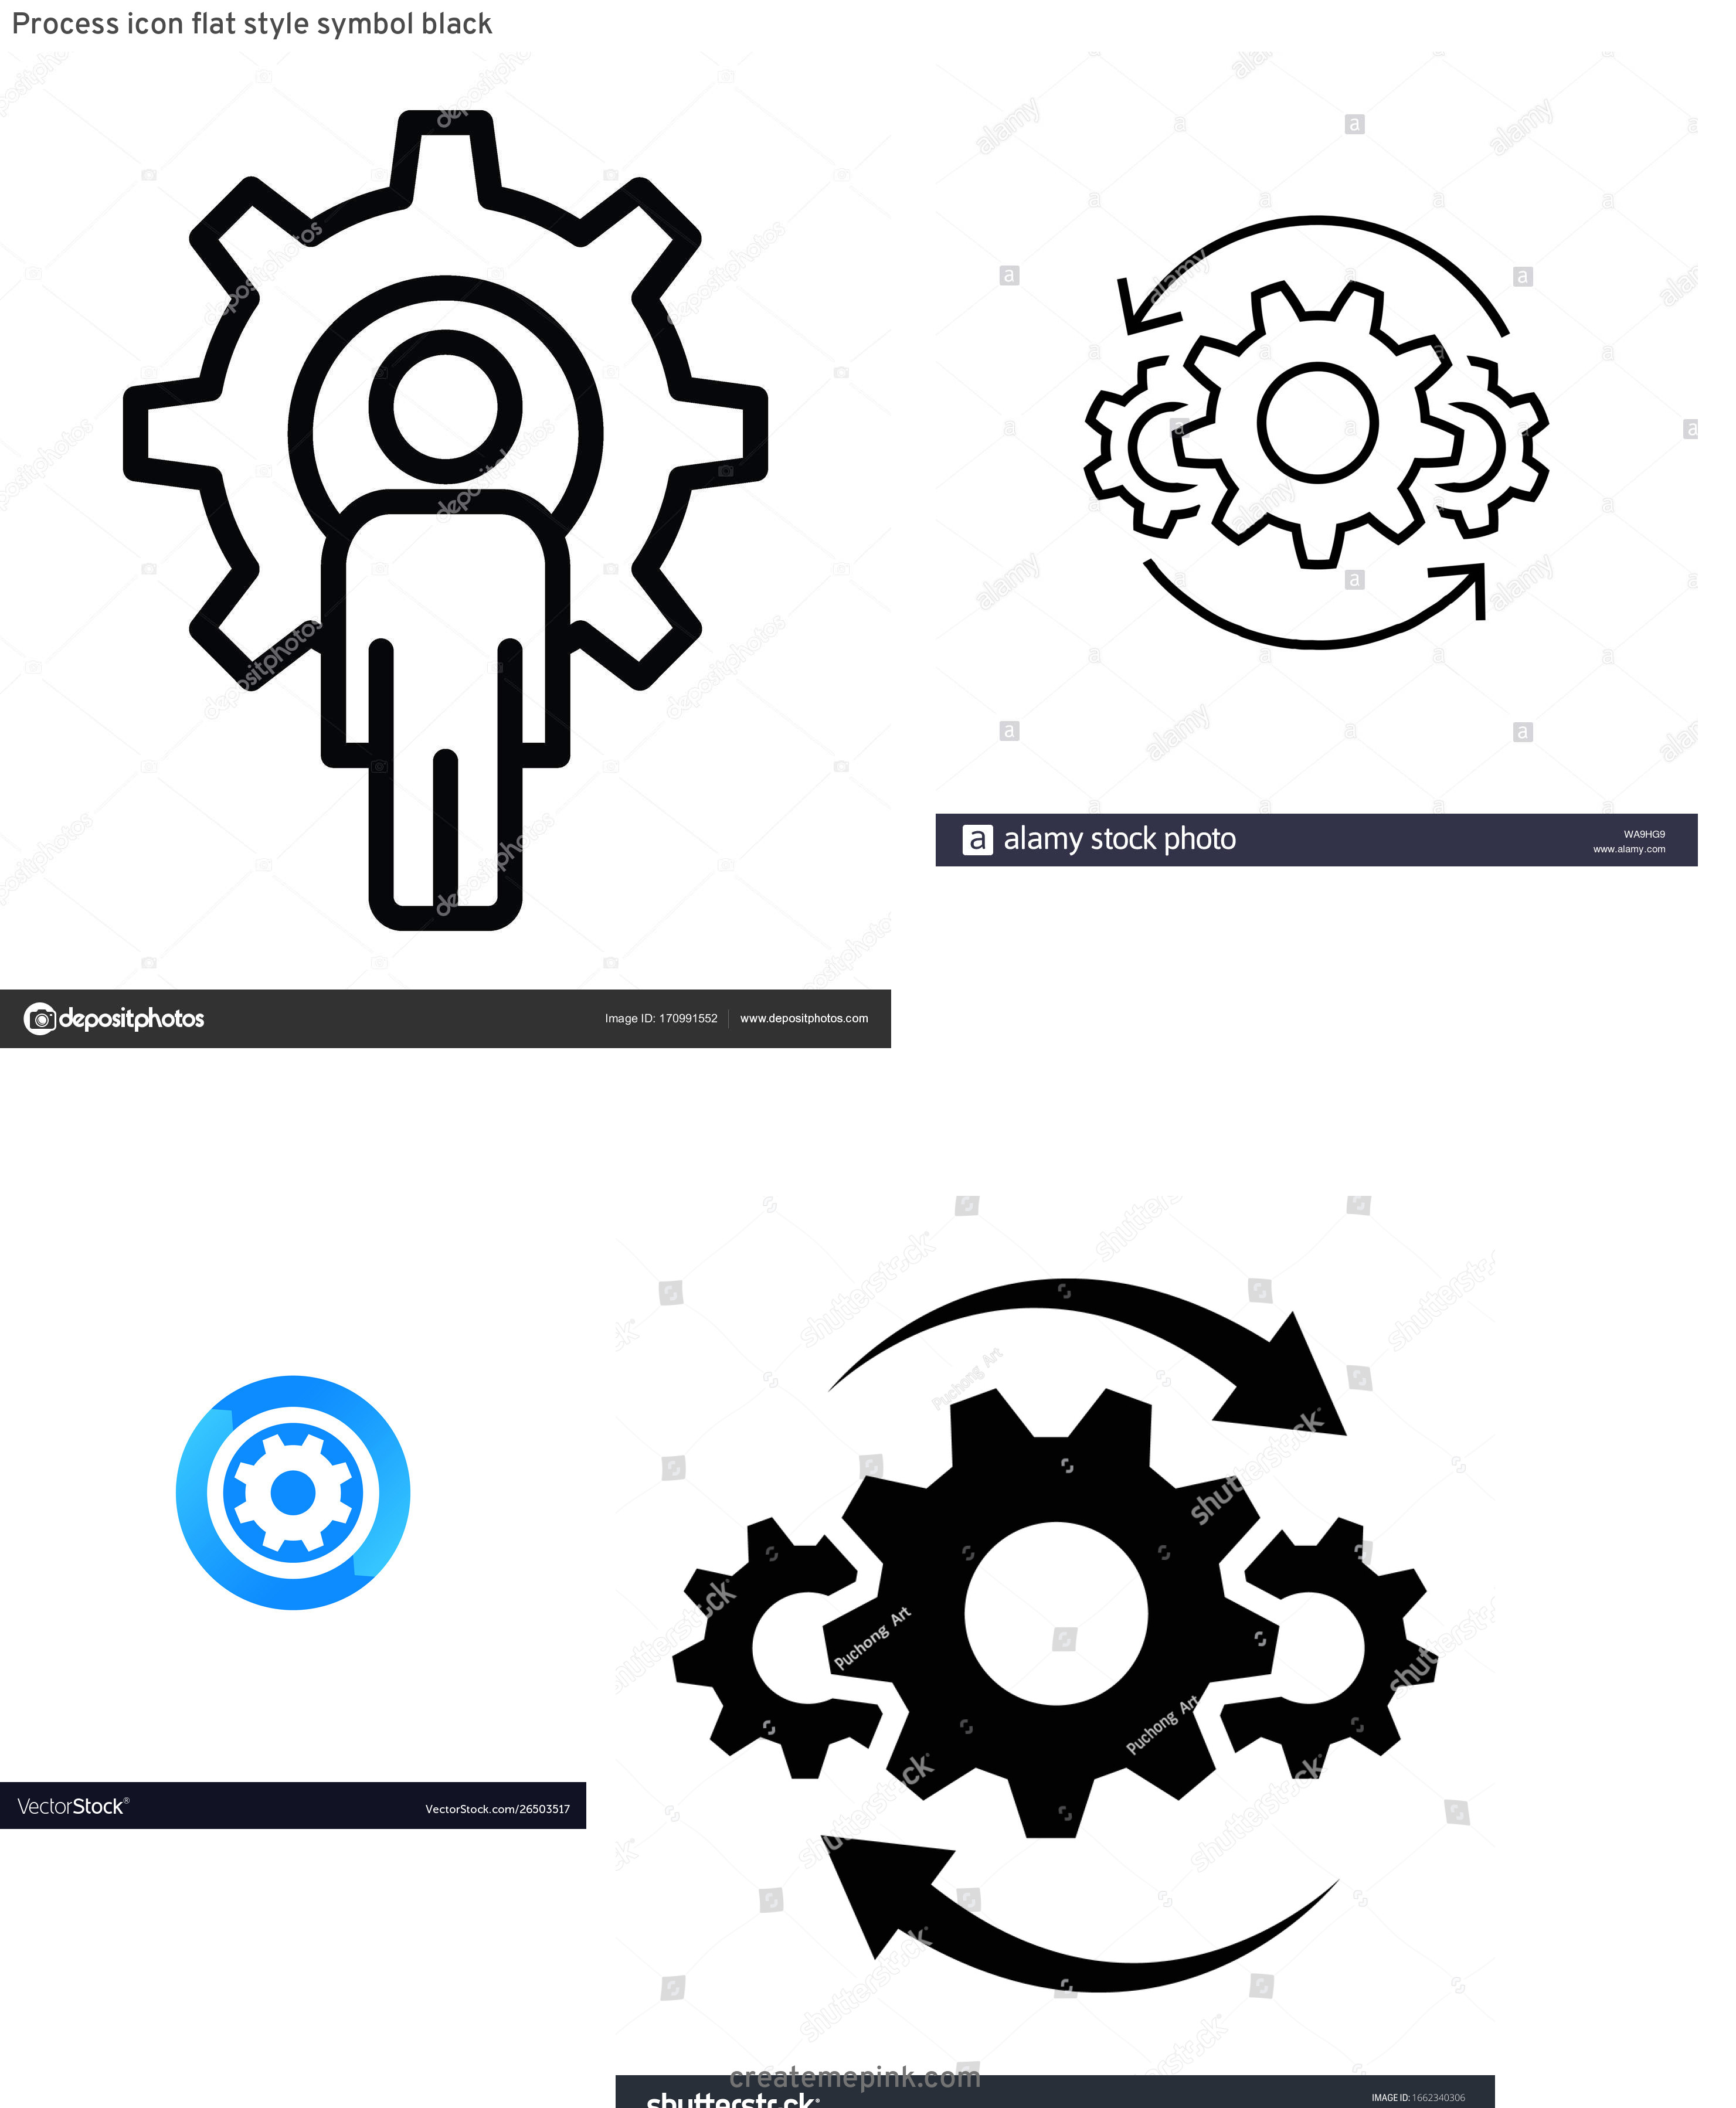 Operations Icon Vector: Process Icon Flat Style Symbol Black